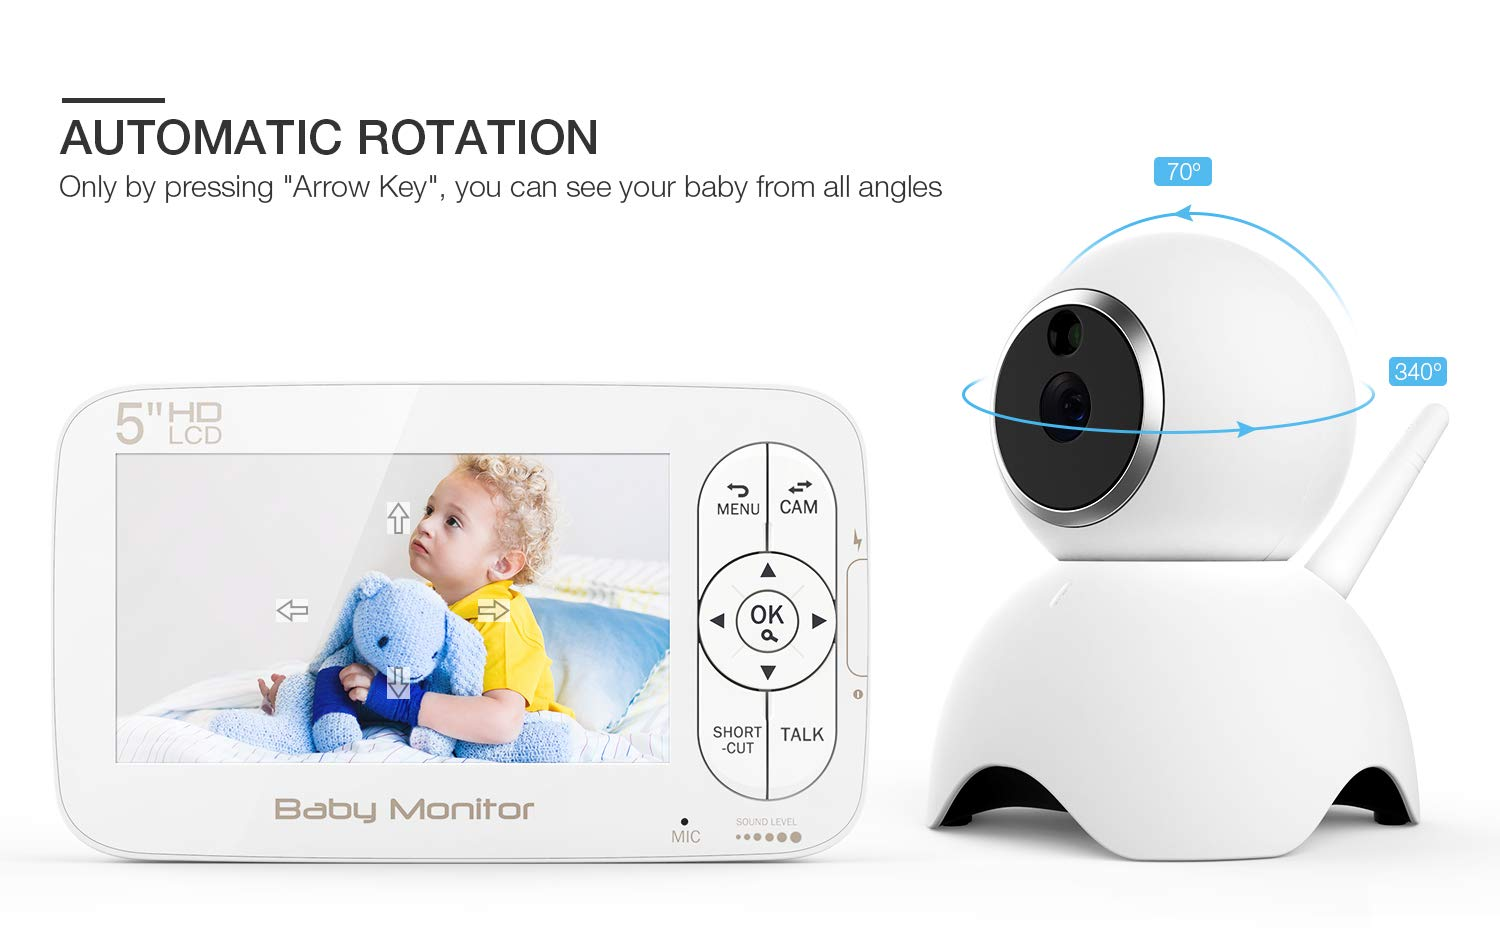 Baby Monitor, BOIFUN Baby Video Camera with 5'' 1280x720P HD Screen 2000mAh Rechargeable Battery with VOX Night Vision Temperature Monitor Two-Way Talk 355 Degree Remote Control Camera Baby/Elder/Pet BOIFUN Sleep Mode & Night Vision----In Sleep mode, The screen on the mother unit is black. Screen will light up when baby starts crying. Night vision distance is 5 meters, so you will never miss any moment of your baby, and it frees yourself from the hustle and bustle. You will be able to have your own time to read, watch TV, or even enjoy a couple of drinks with your husband. Bring you lots of fun. 2000mAh Battery----2000mAh high-capacity battery (mother unit), lasts up to 6 hours with full functions, and 20 hours in sleep mode, from testing results. Let you have longer time get rid of the shackles of the wires. Bring you longer time of fun. 300Meters Extra-Large Range----300m signal coverage area (outdoor test) allows you to cook happily downstairs, enjoy the sun in the pool, or even have a relaxing BBQ time with friends in terrace. Bring you bigger fun. 4